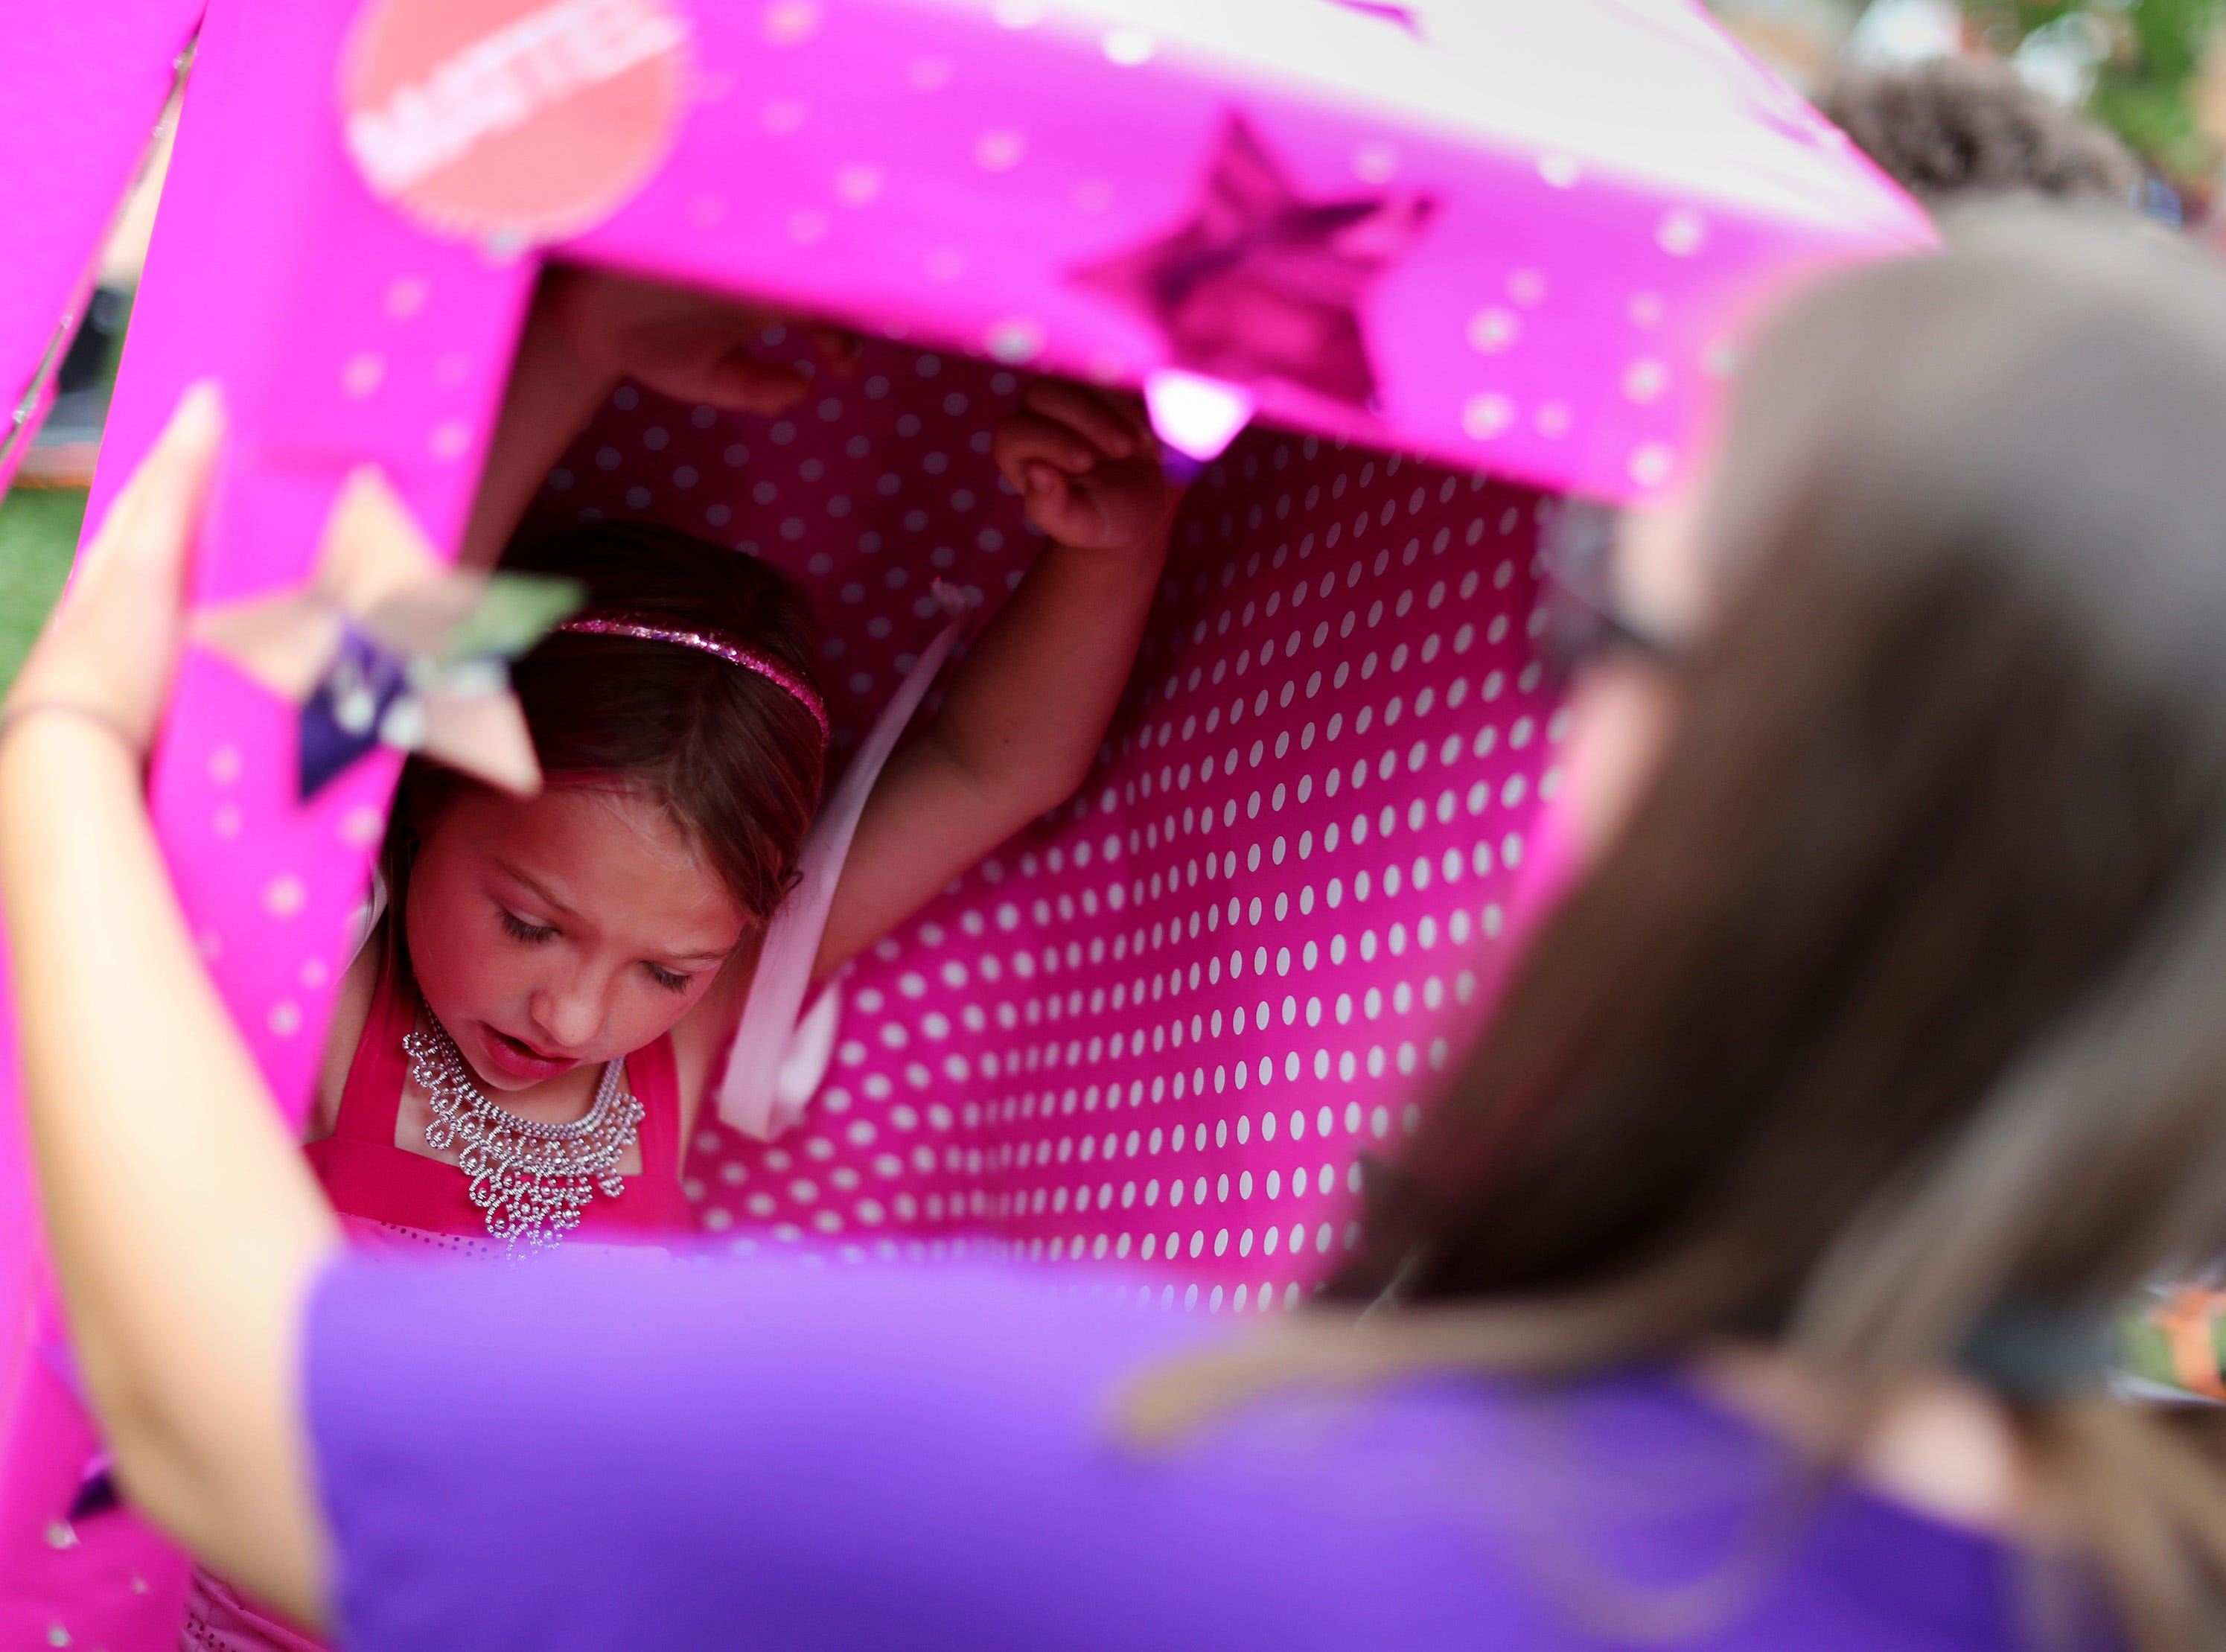 Sarah Burt helps her daughter Hailey, 7, get into her Barbie box costume during the 10th annual ChildrenÕs Parade Wednesday, July 25, 2018, in Appleton, Wis. Danny Damiani/USA TODAY NETWORK-Wisconsin